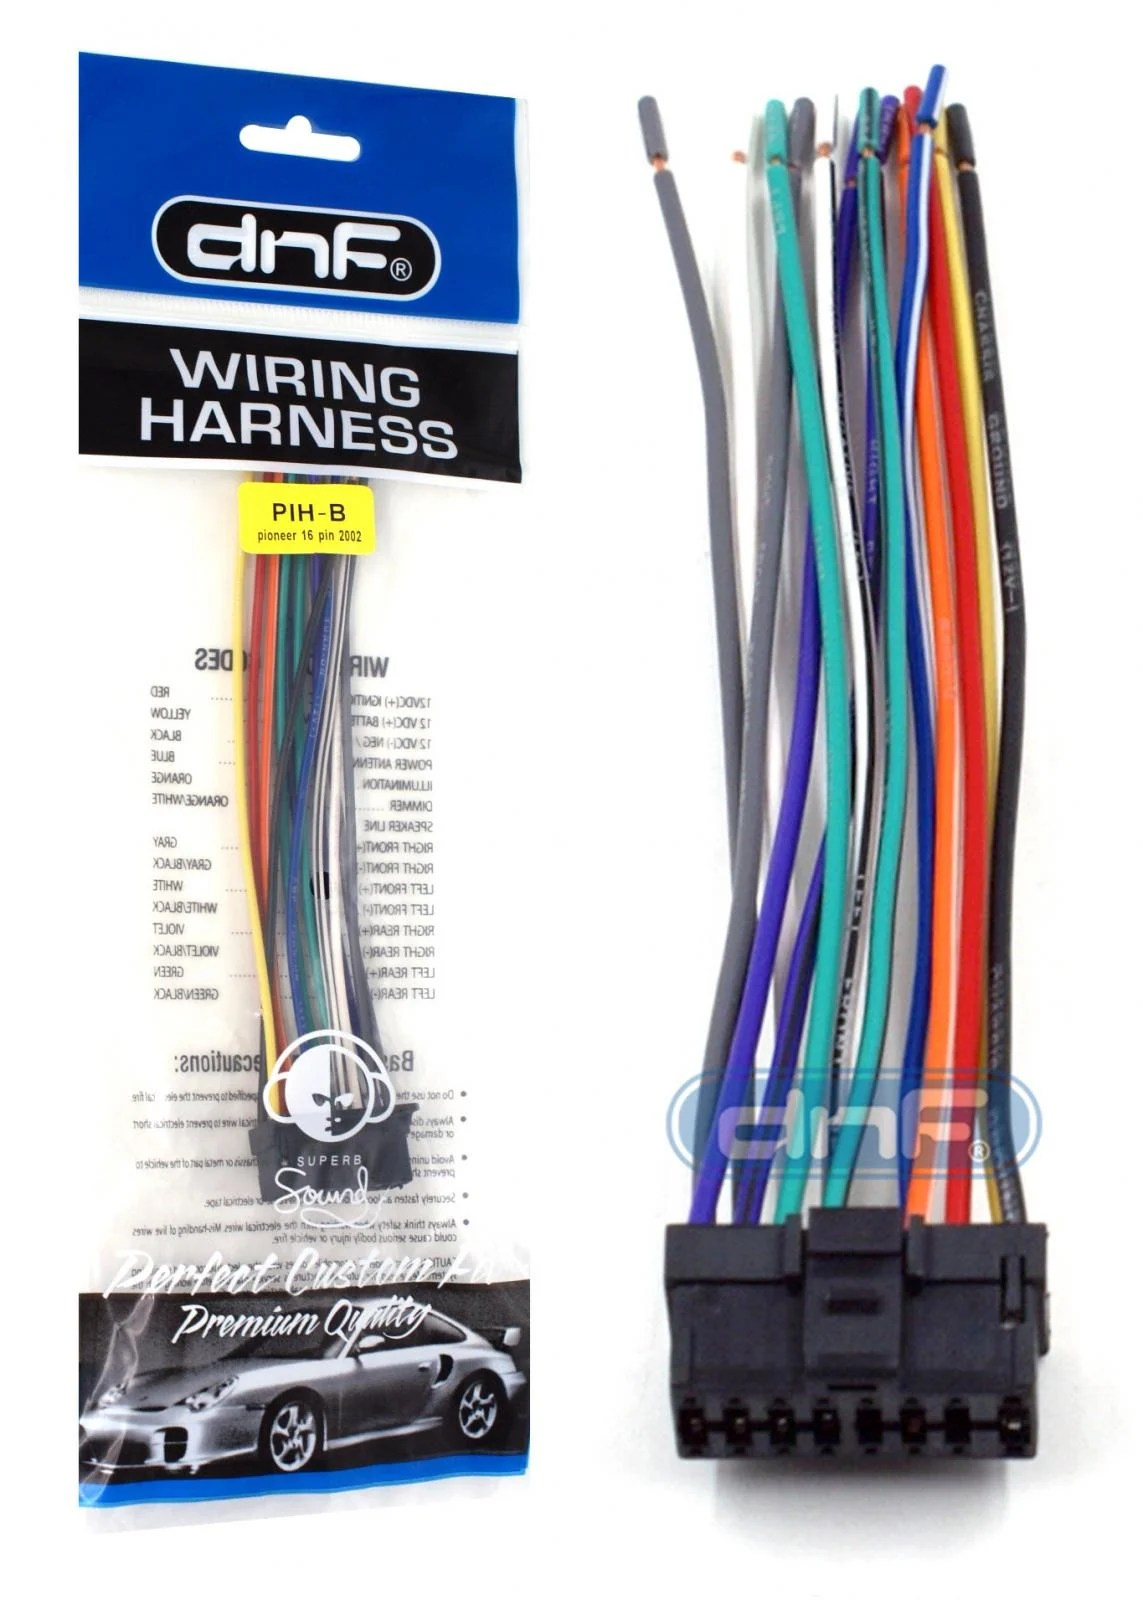 small resolution of pioneer wiring harness deh p6400 deh p6450 fh p4000 free same day